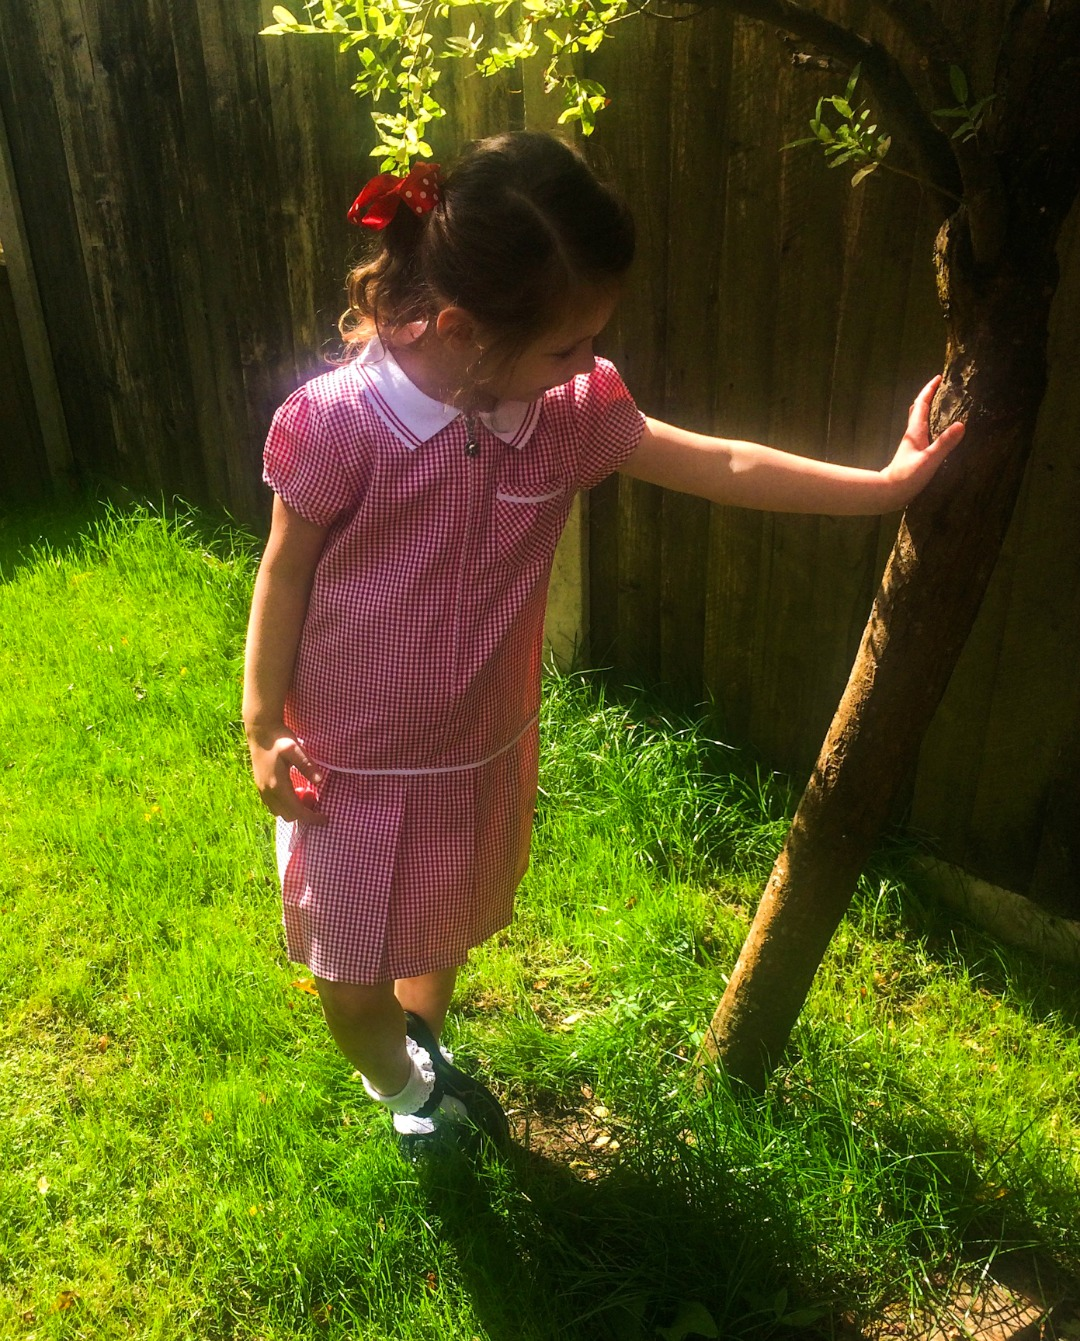 A photograph of a little girl standing in a garden and leaning against a tree - she is wearing her first school uniform and modelling her first pair of School Shoes, a pair of Lelli Kelly School Shoes - The First pair of school shoes with Jake Shoes - Mrs H's favourite things